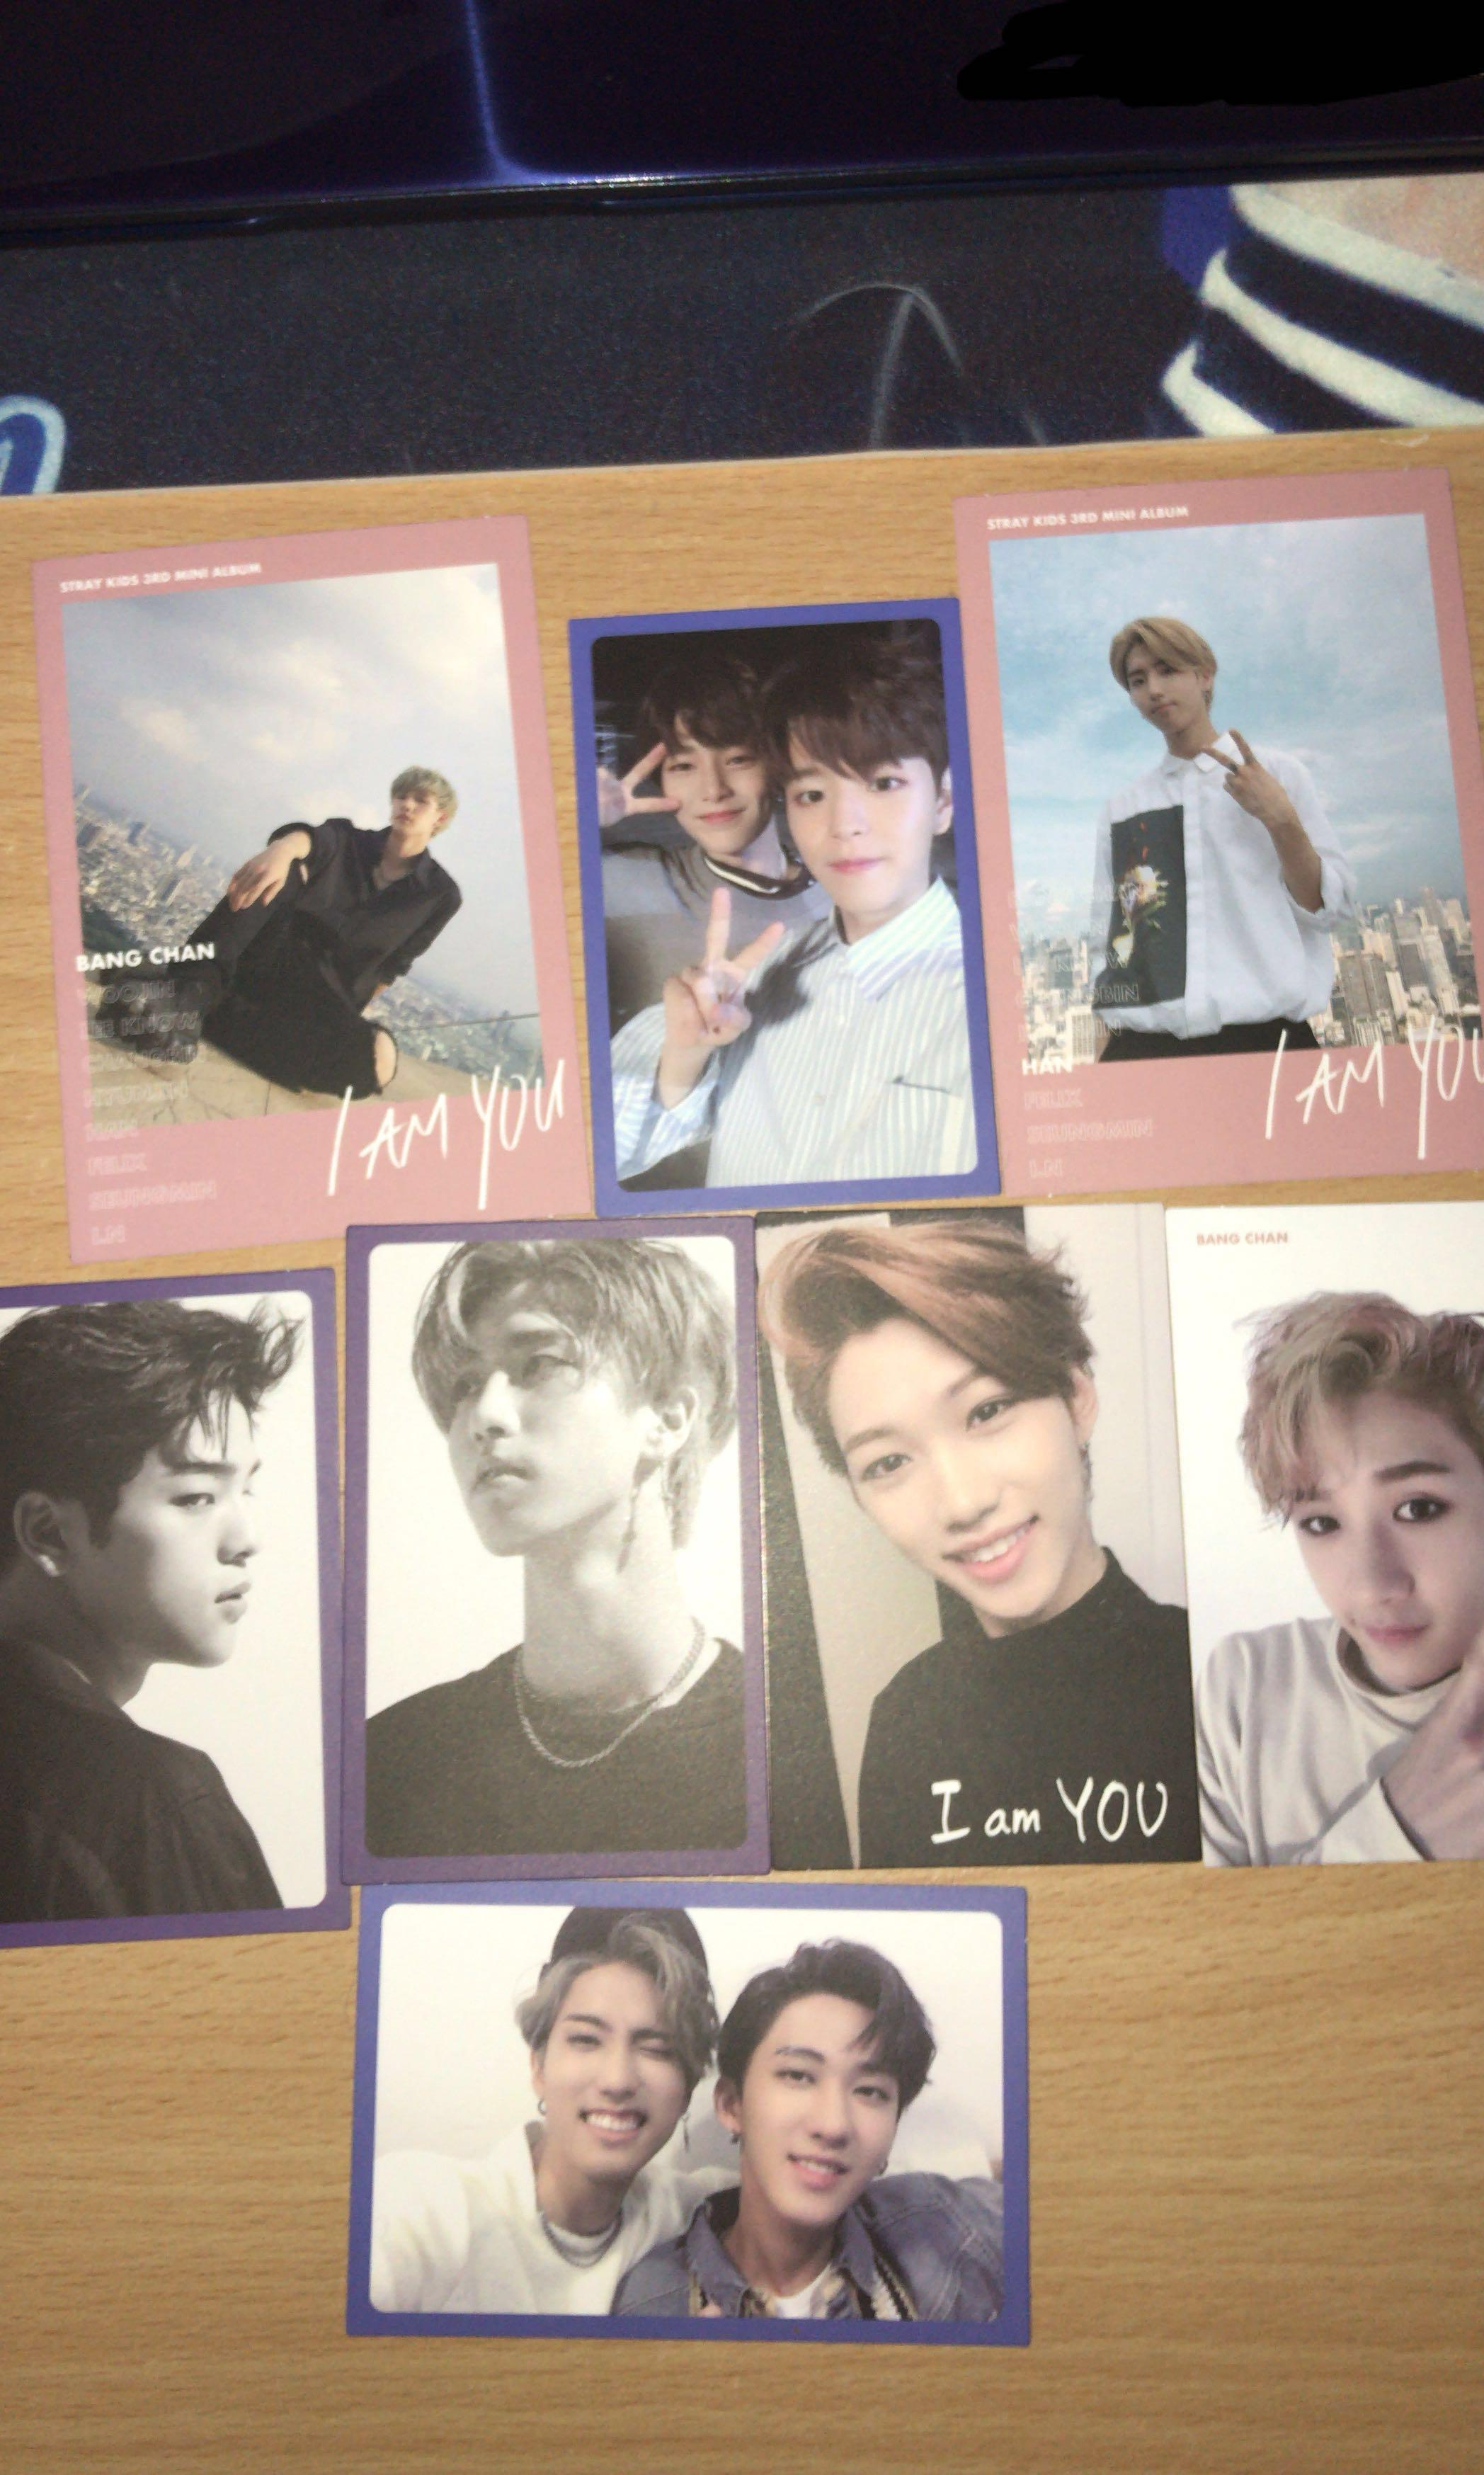 WTT] Stray kids I am you photocards, Entertainment, K-Wave